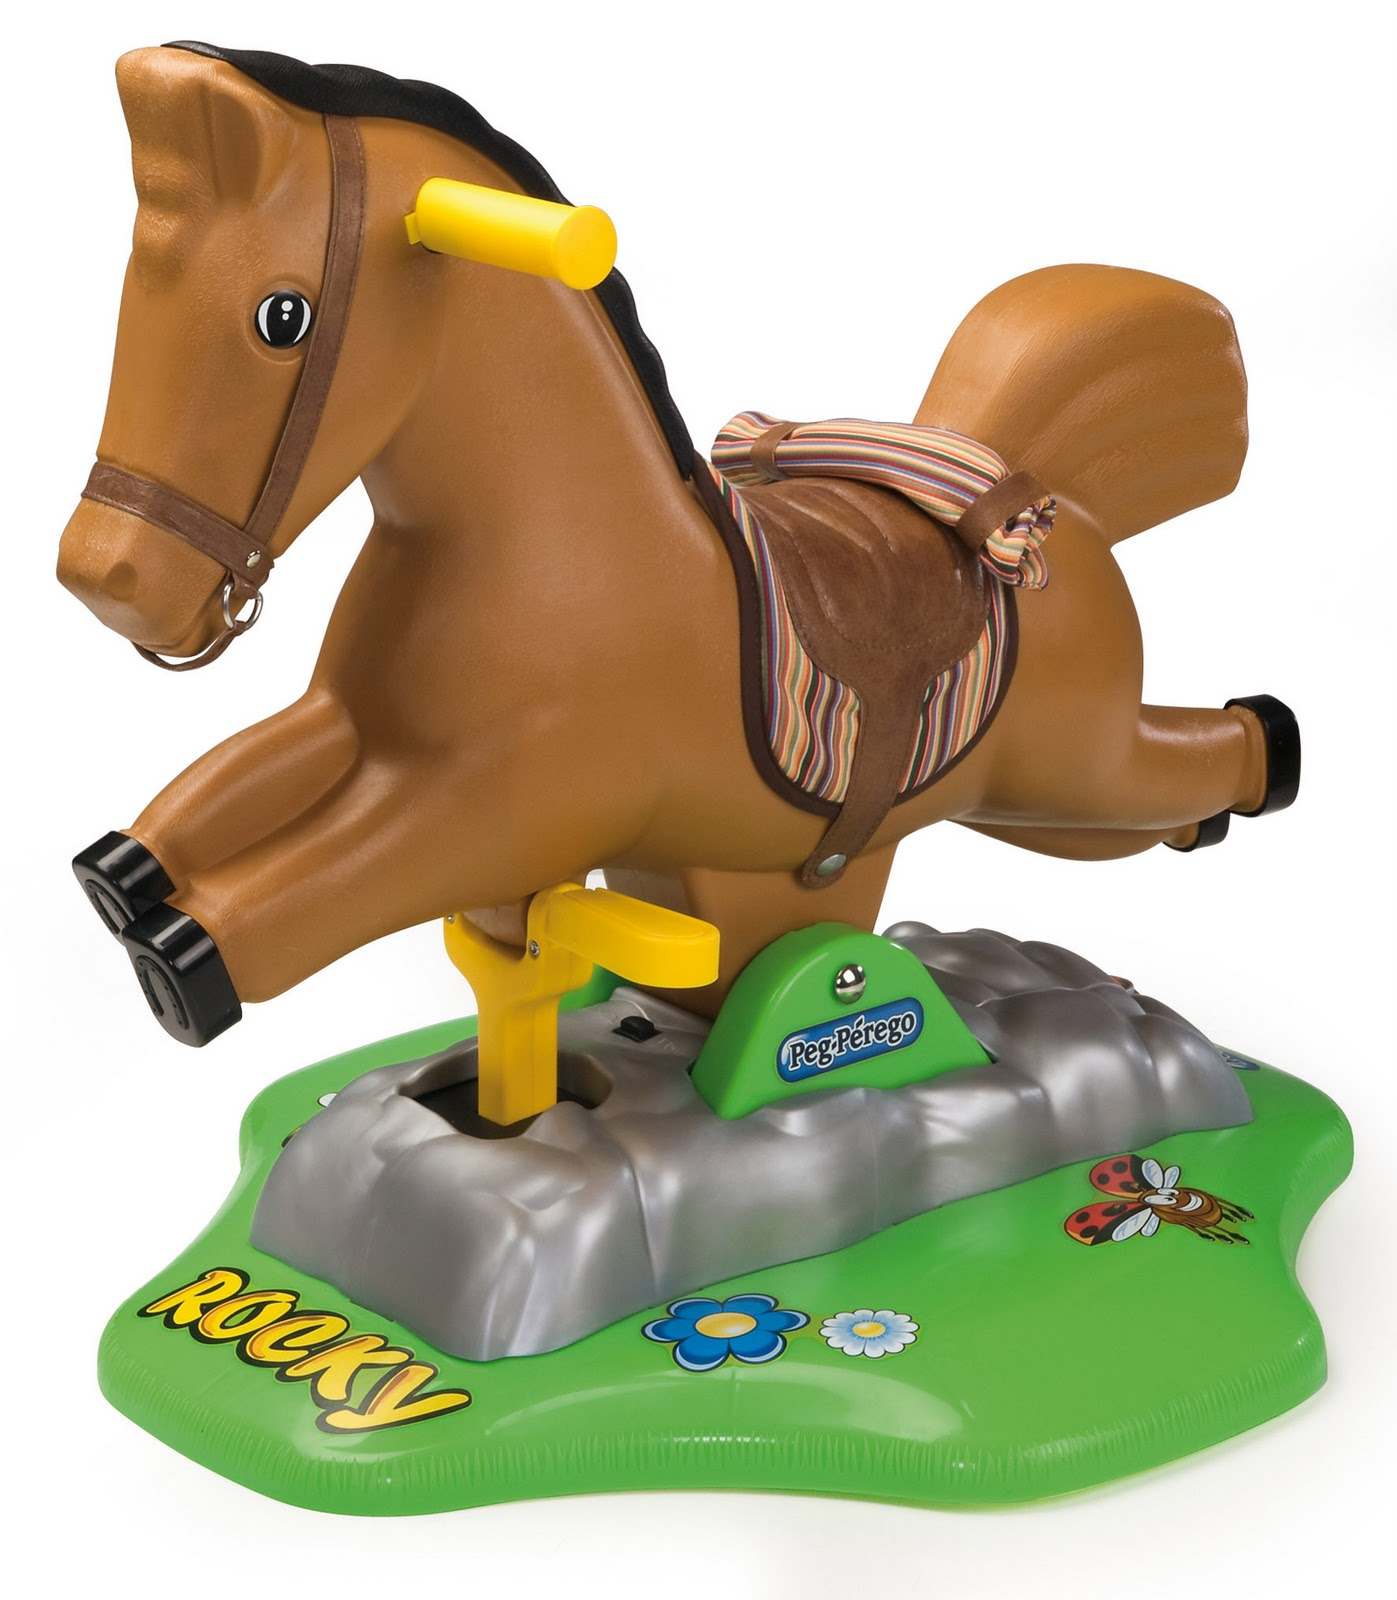 Singapore Toy Rental Peg Perego Battery Powered Rocking Horse